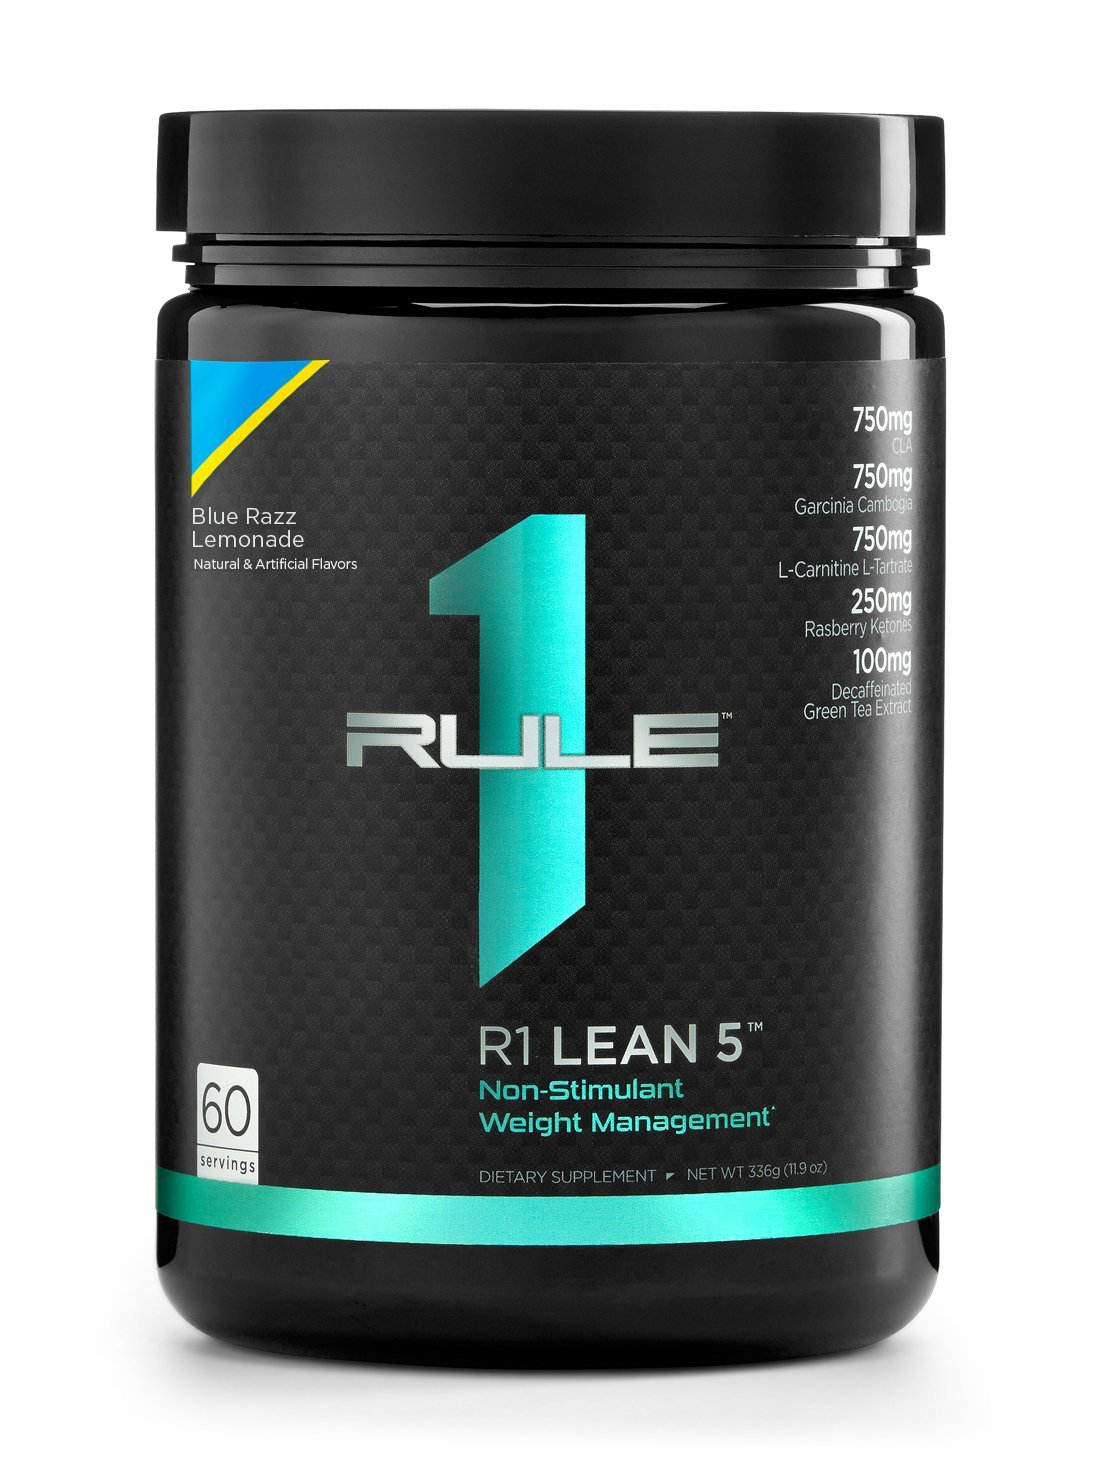 R1 Lean 5, Rule 1 Proteins (Blue Razz Lemonade, 60 Servings)